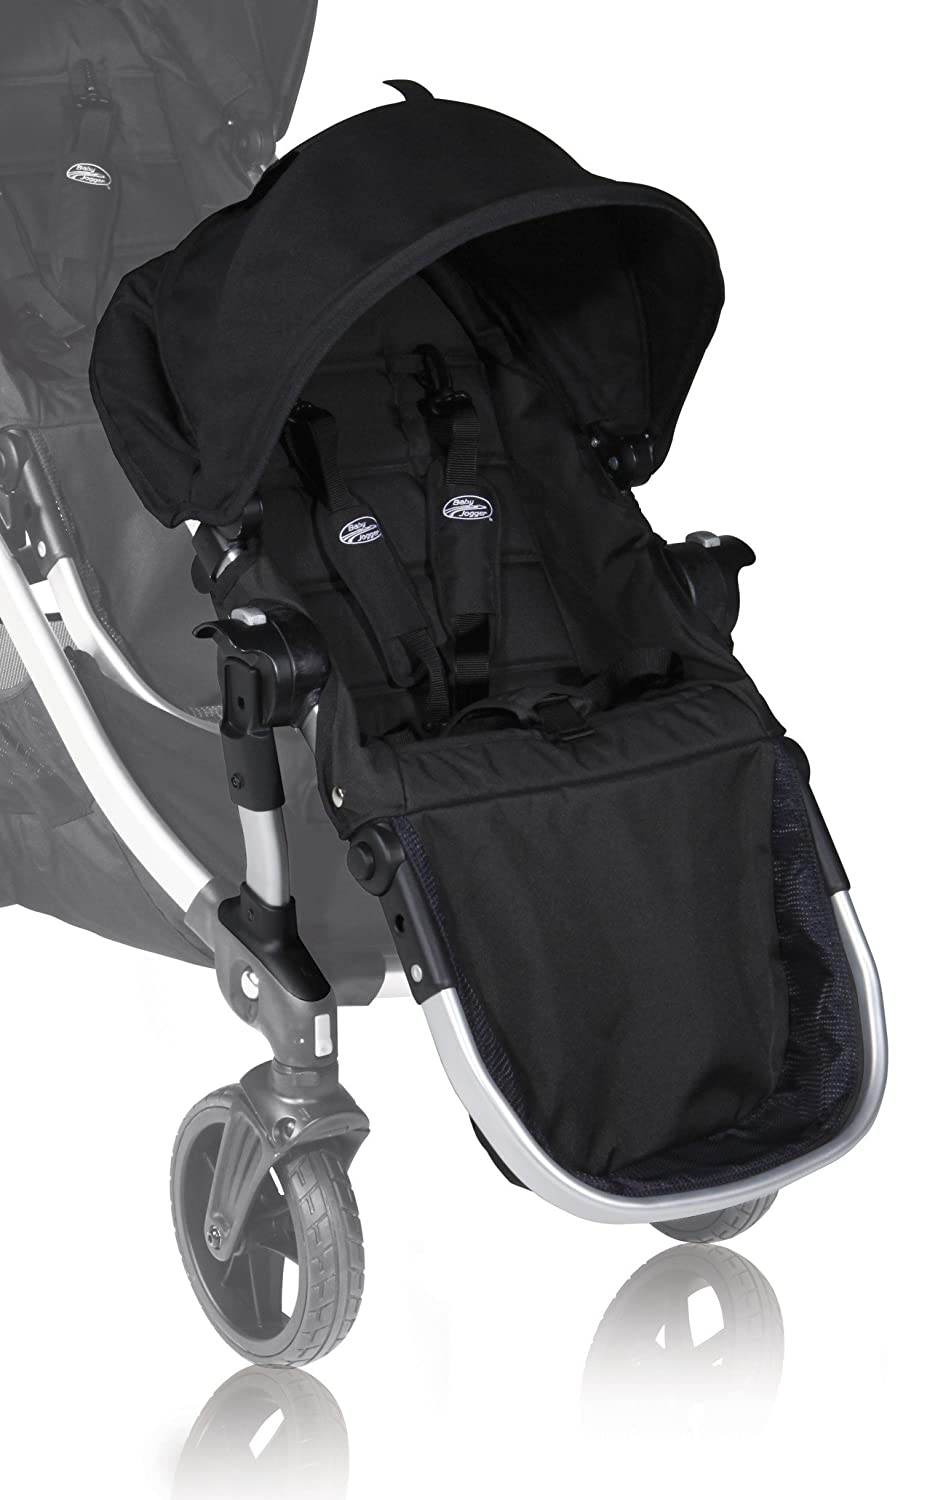 Baby Jogger City Select Second Seat Kit Onyx Discontinued By Manufacturer